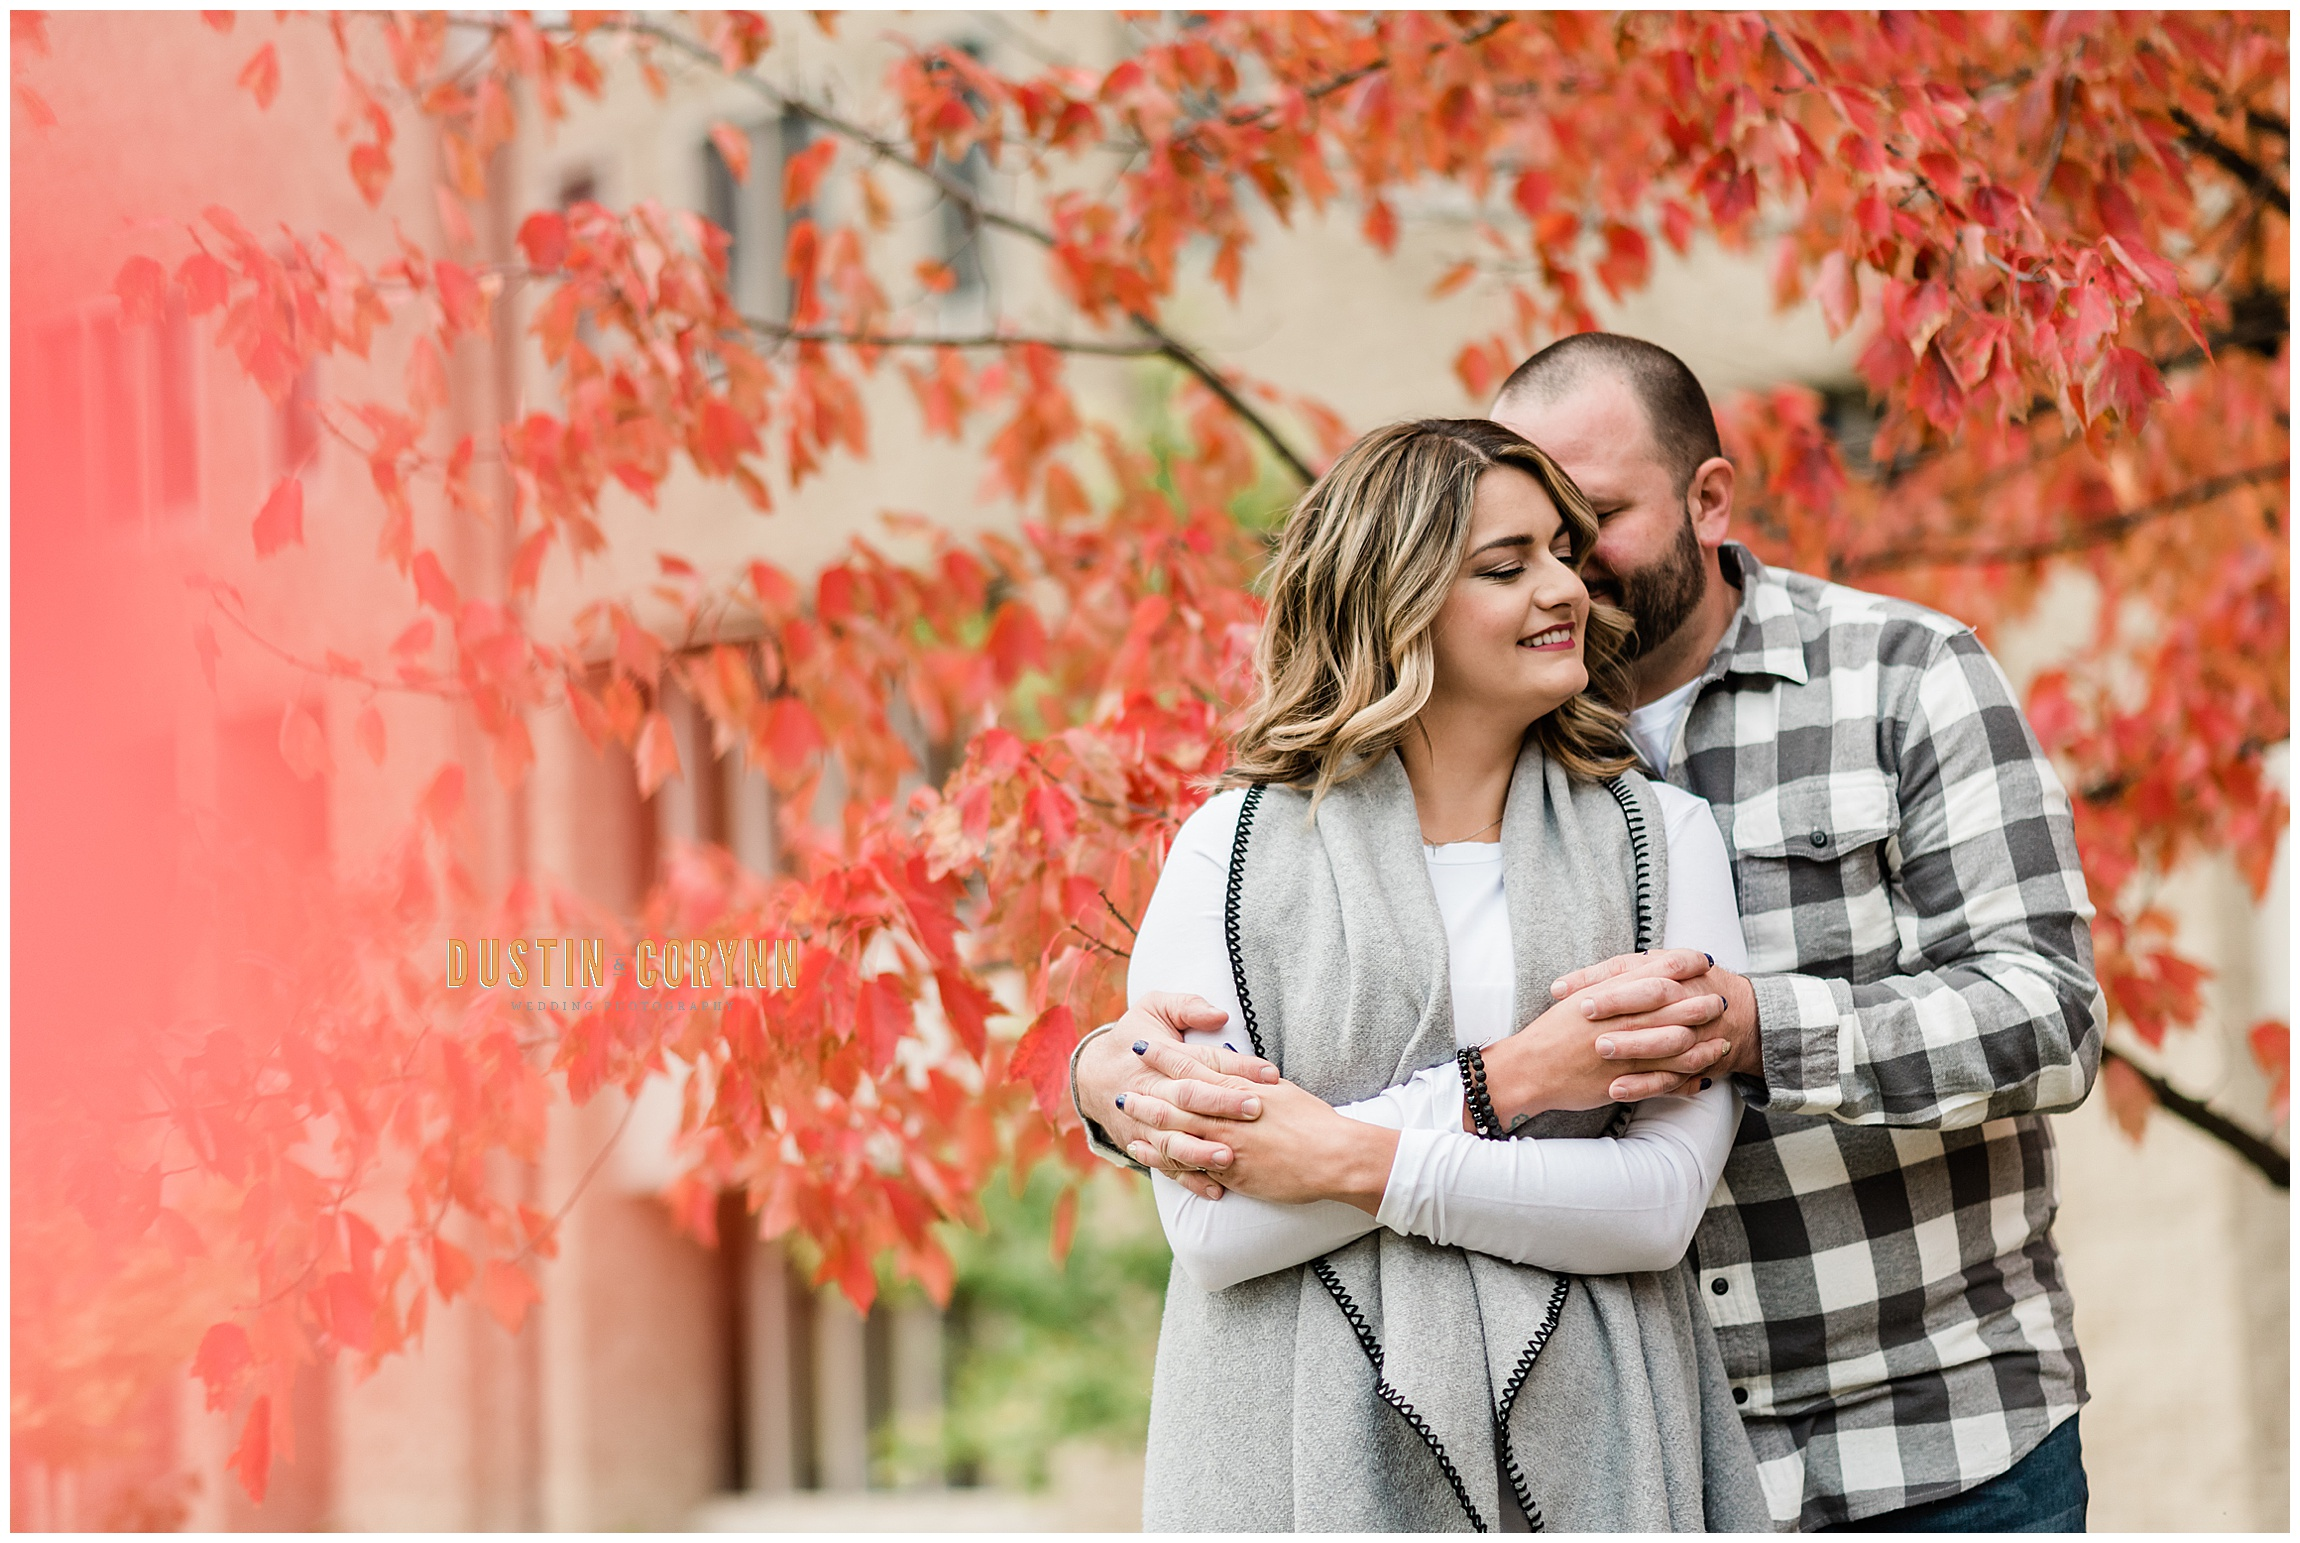 Notre Dame Engagement Session in Autumn